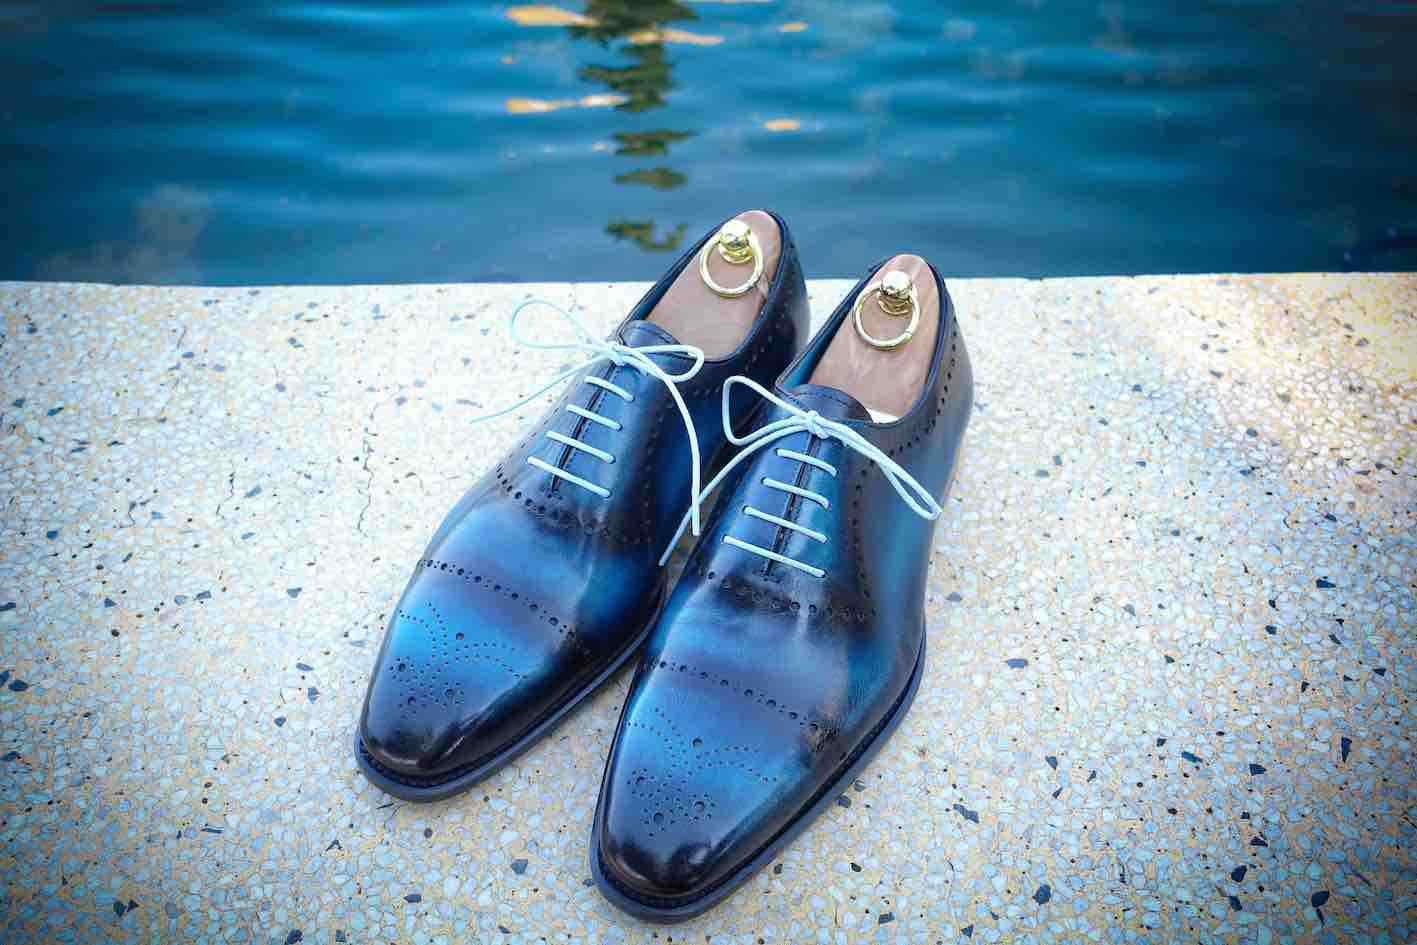 senza esitazione! acquista ora! blu Uomo Patina lace scarpe handmade handmade handmade oxfords custom made dress scarpe for men  nessun minimo